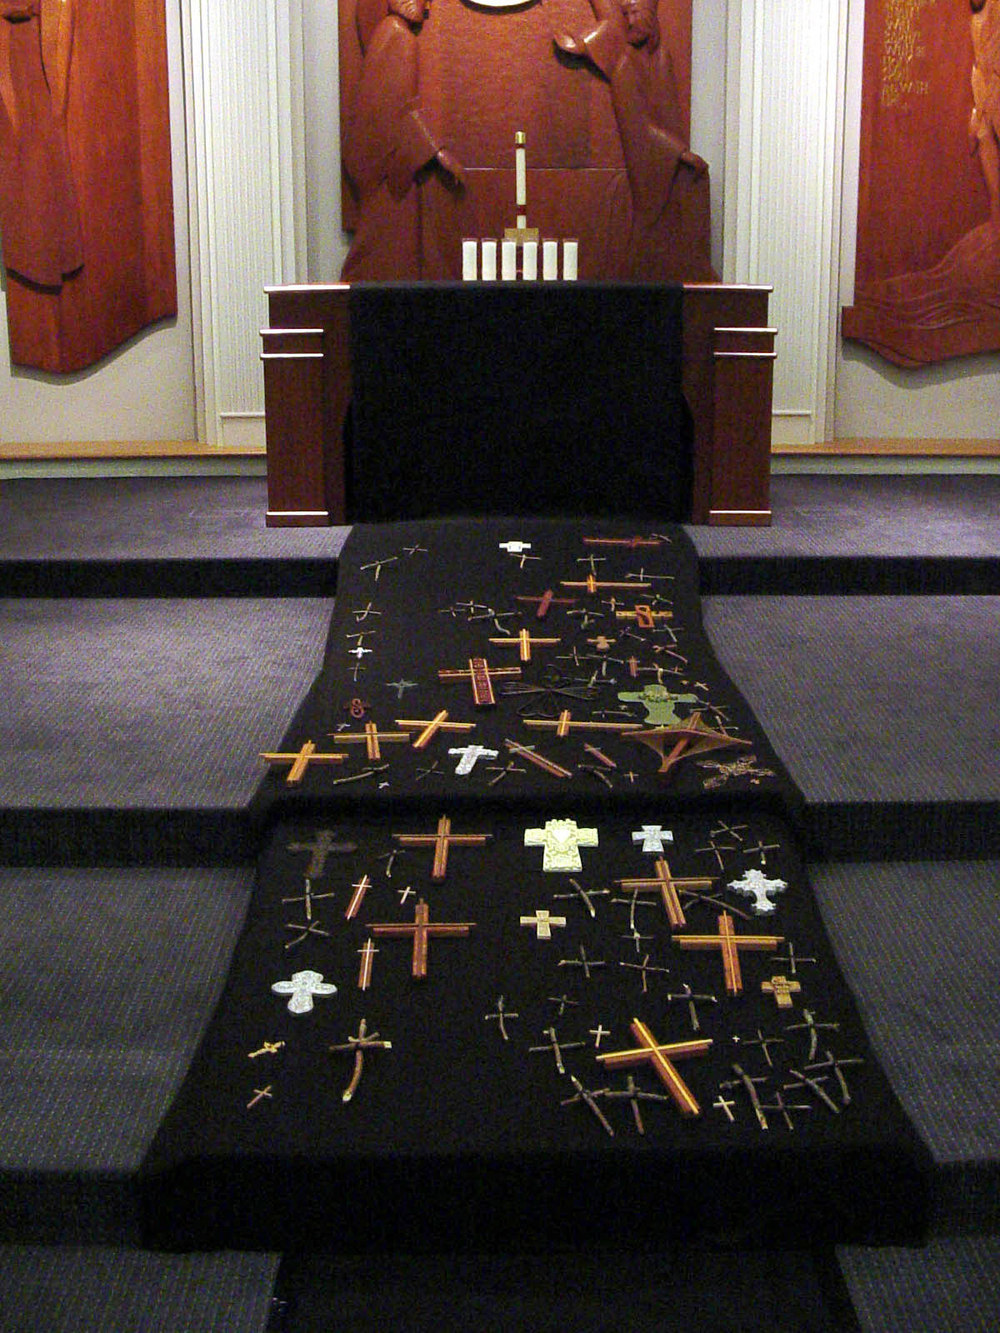 Good Friday Chancel Installation with frontal extended into vertical runner, with community crosses placed during worship